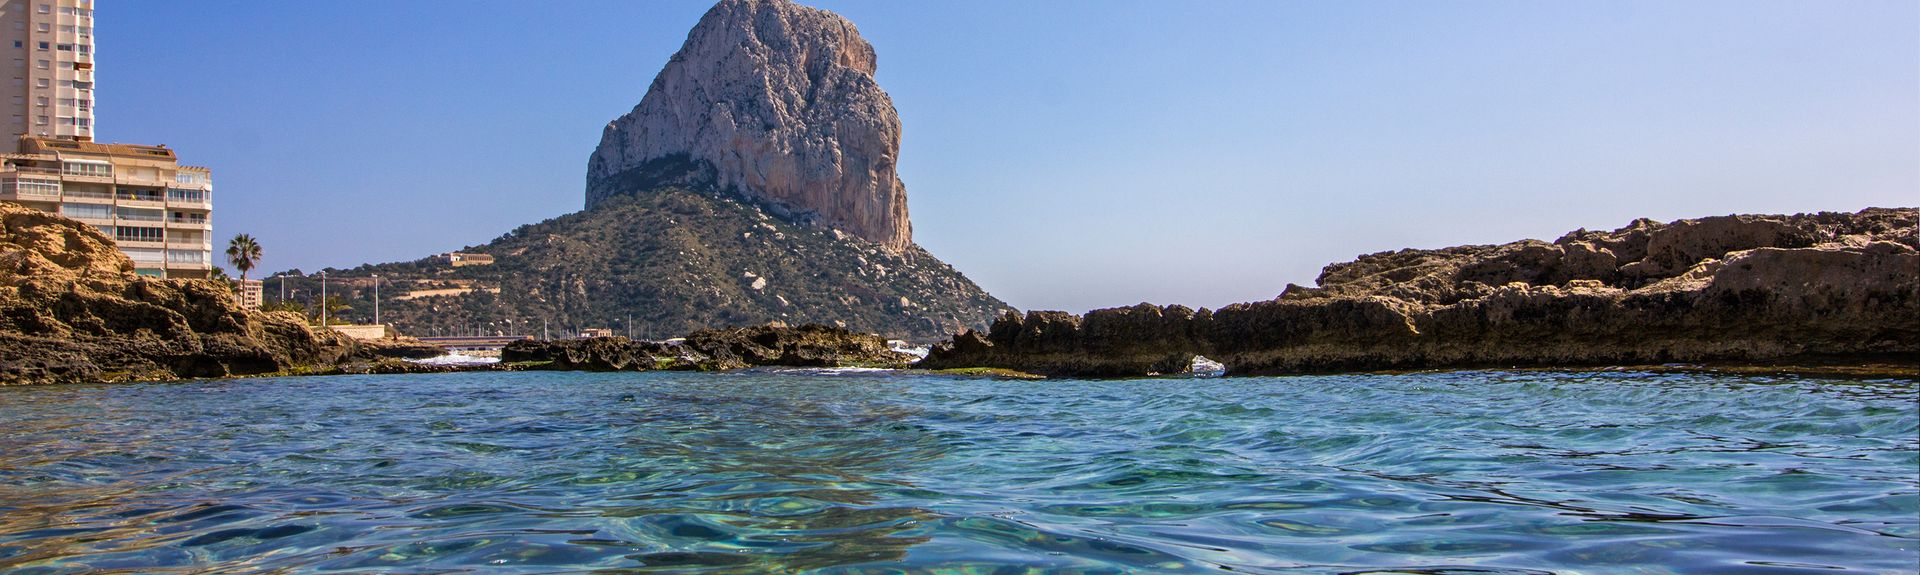 Ifach Rock, Calpe, Spain